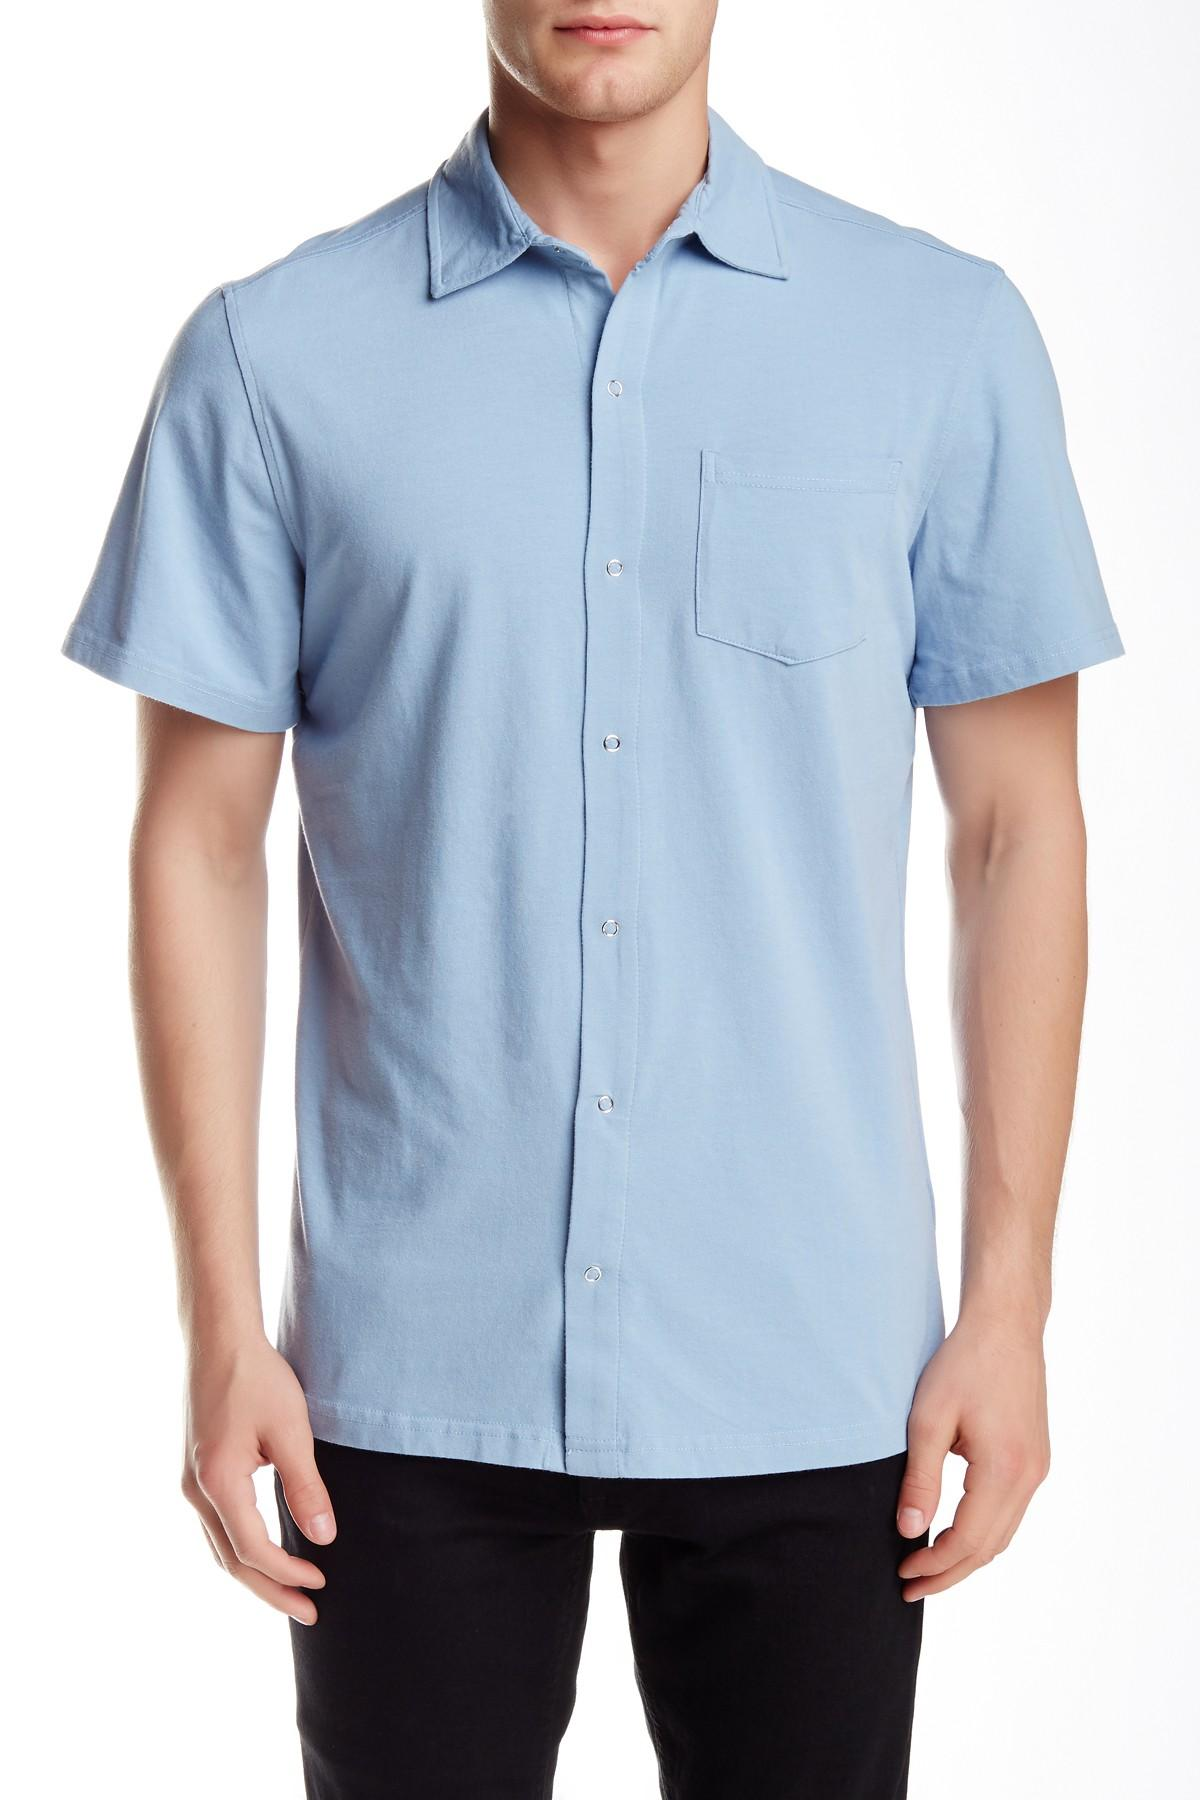 Spenglish short sleeve snap button shirt in blue for men for Mens shirts with snaps instead of buttons